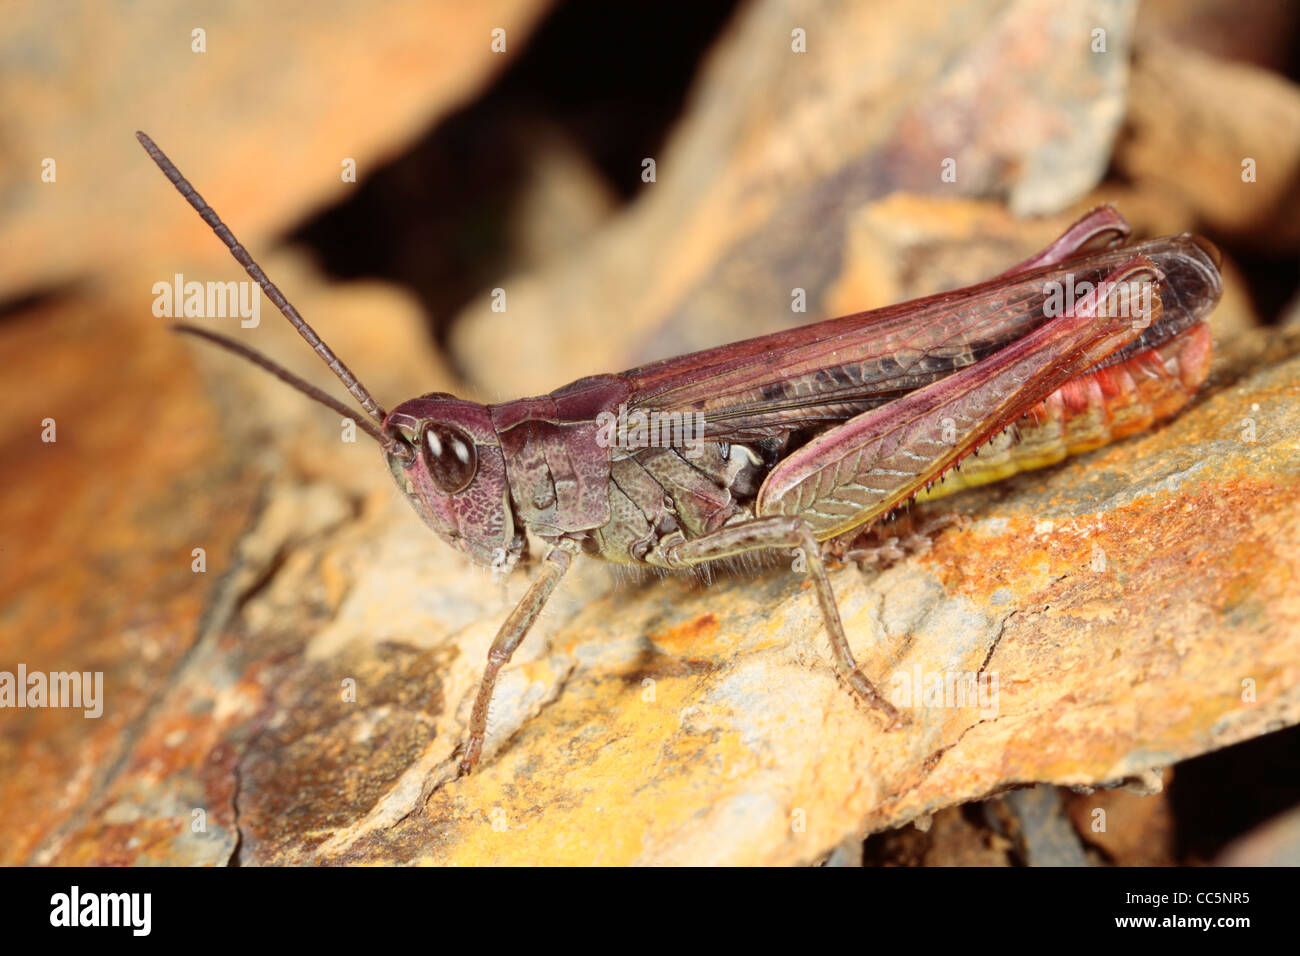 Male Field Grasshopper (Chorthippus brunneus). Purple form. Powys, Wales. August. - Stock Image